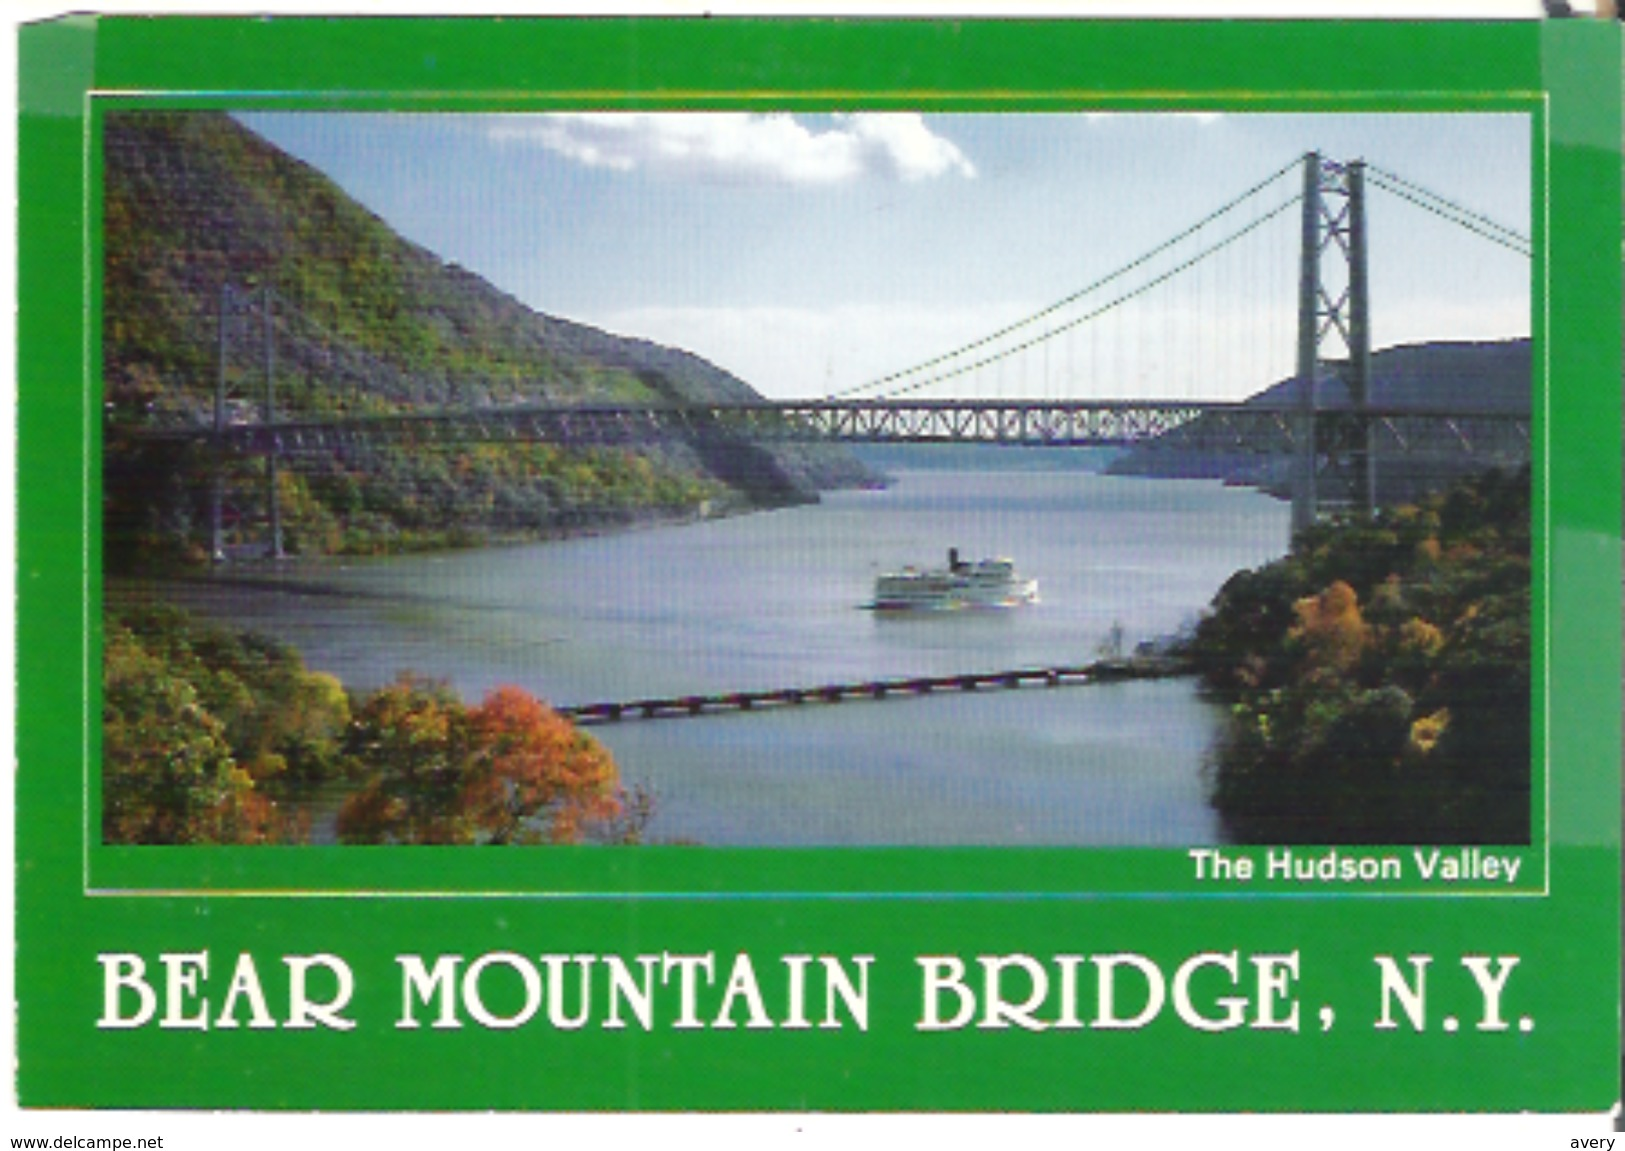 Bear Mountain Bridge, New York, Spanning The Hudson River Between Westchester County & Bear Mountain State Park - NY - New York